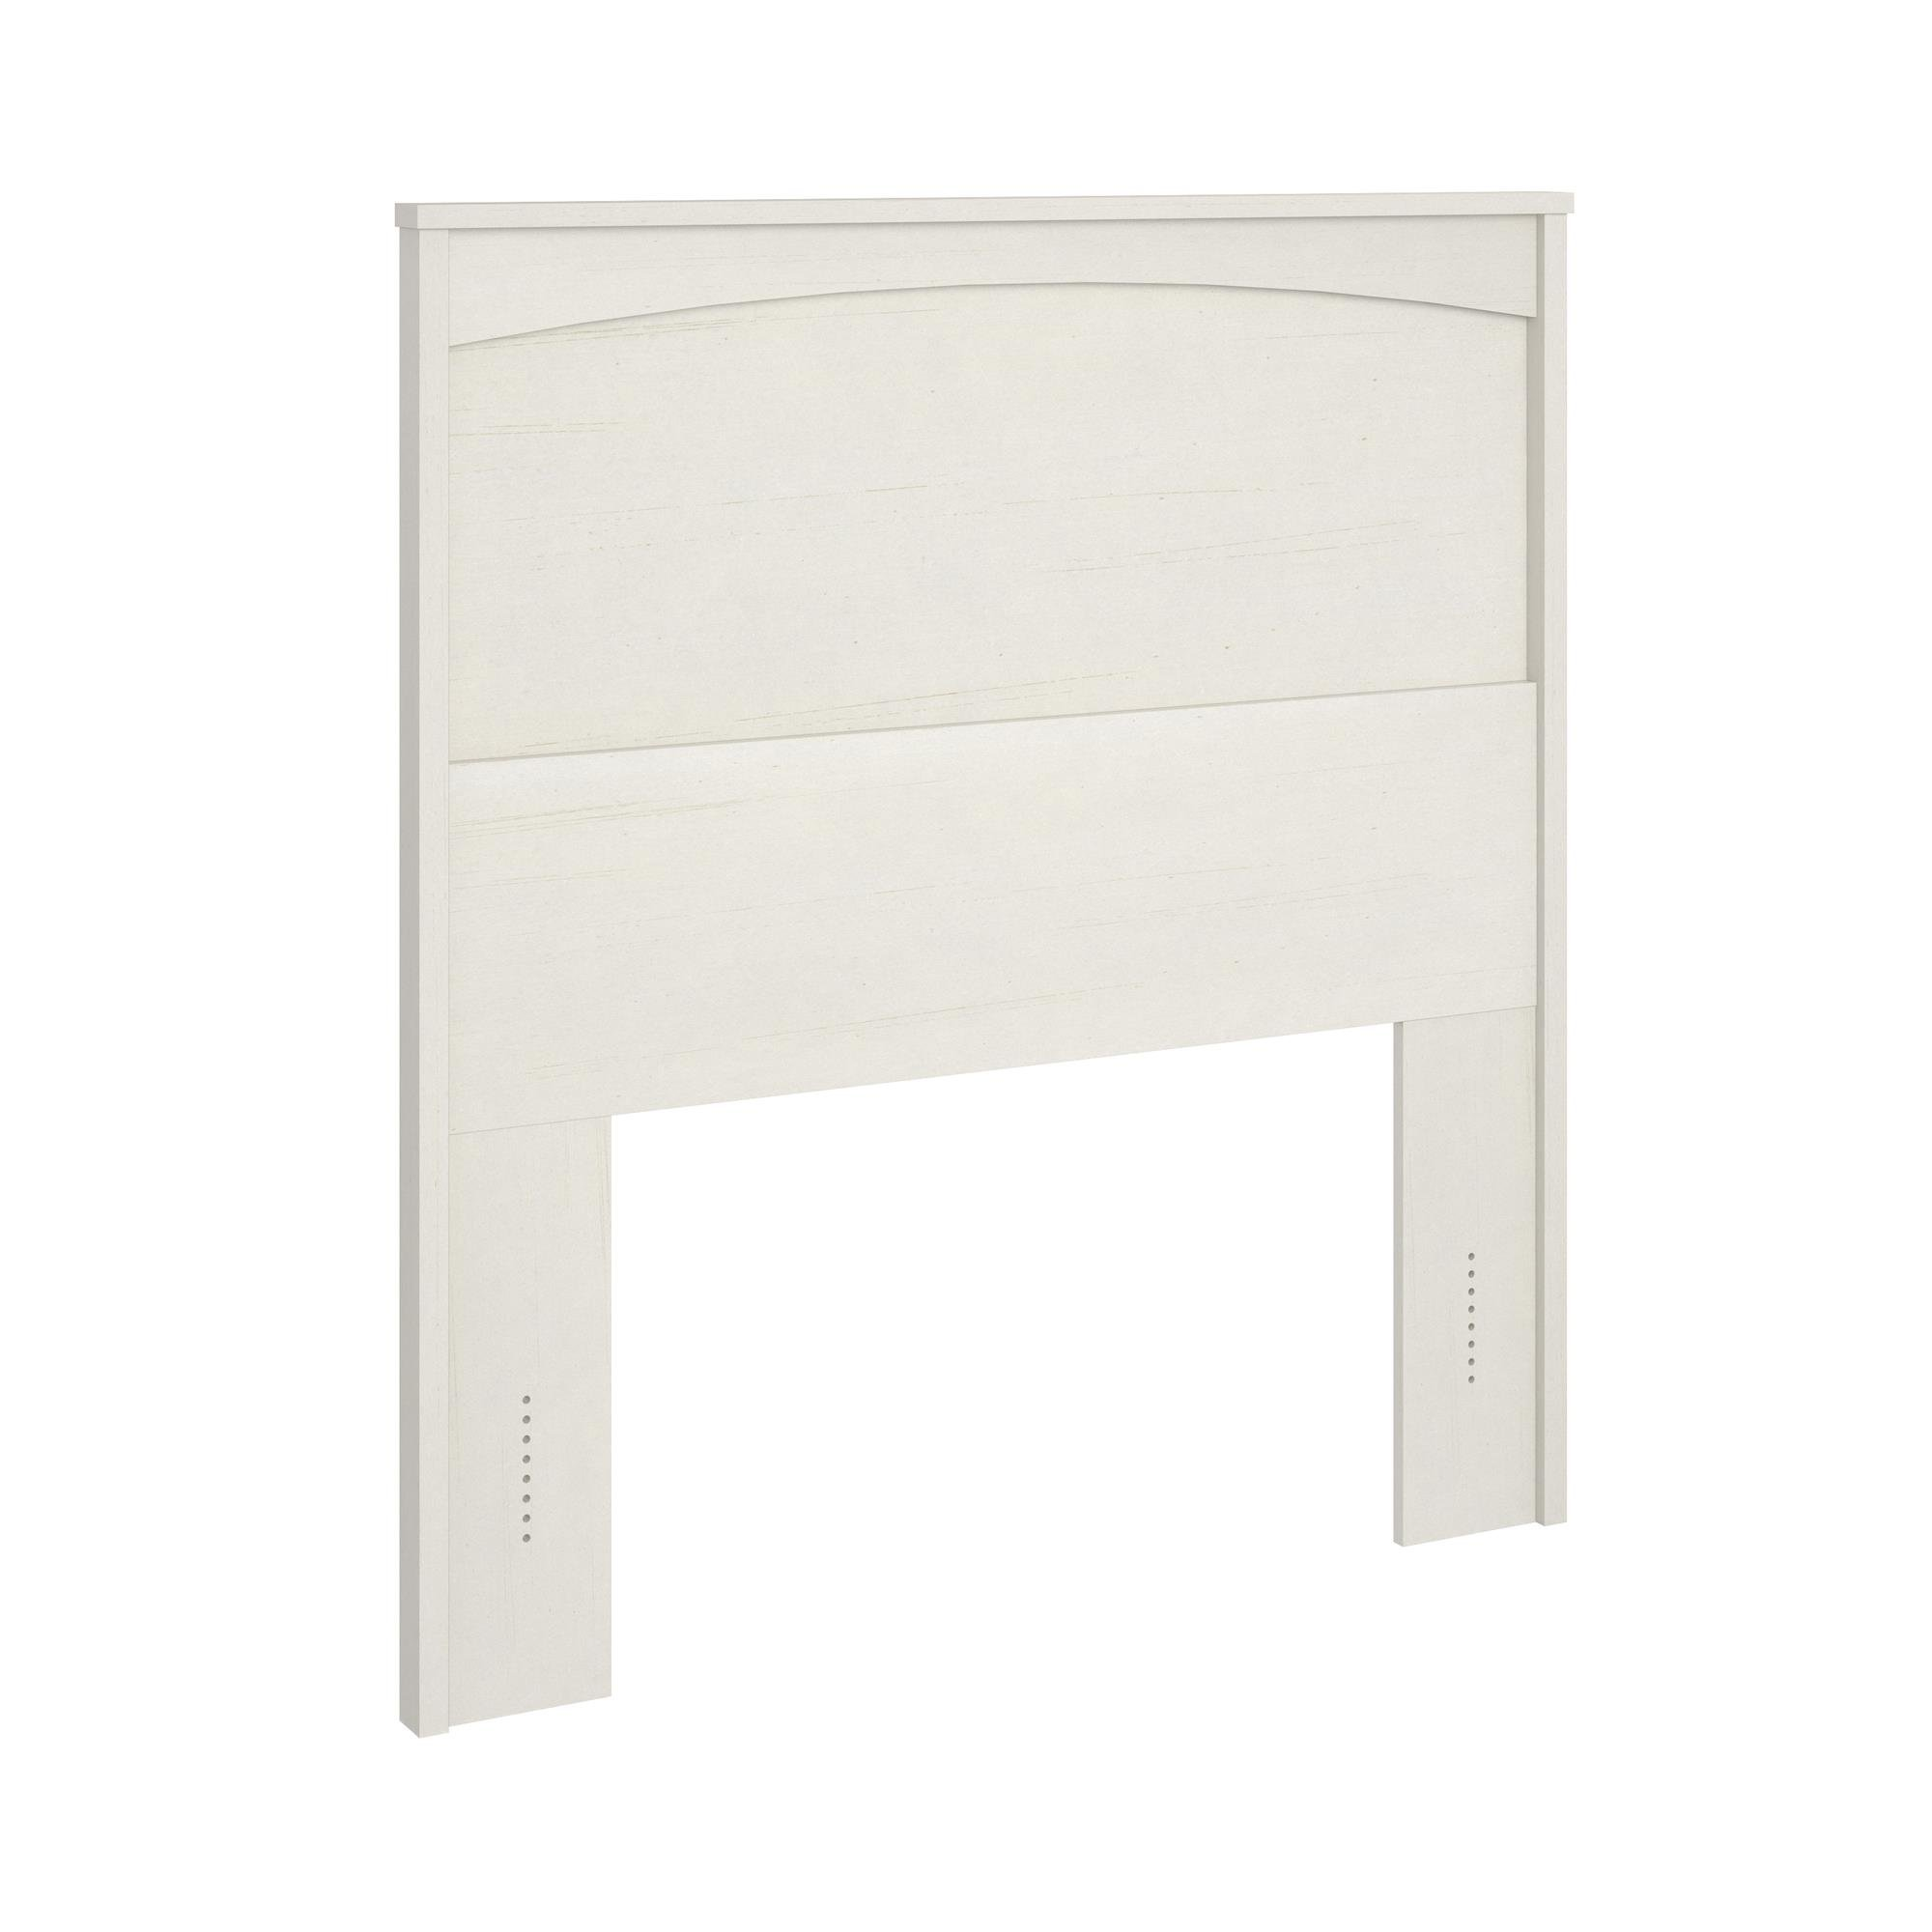 Ameriwood Home Crescent Point Twin Size Headboard, Vintage White